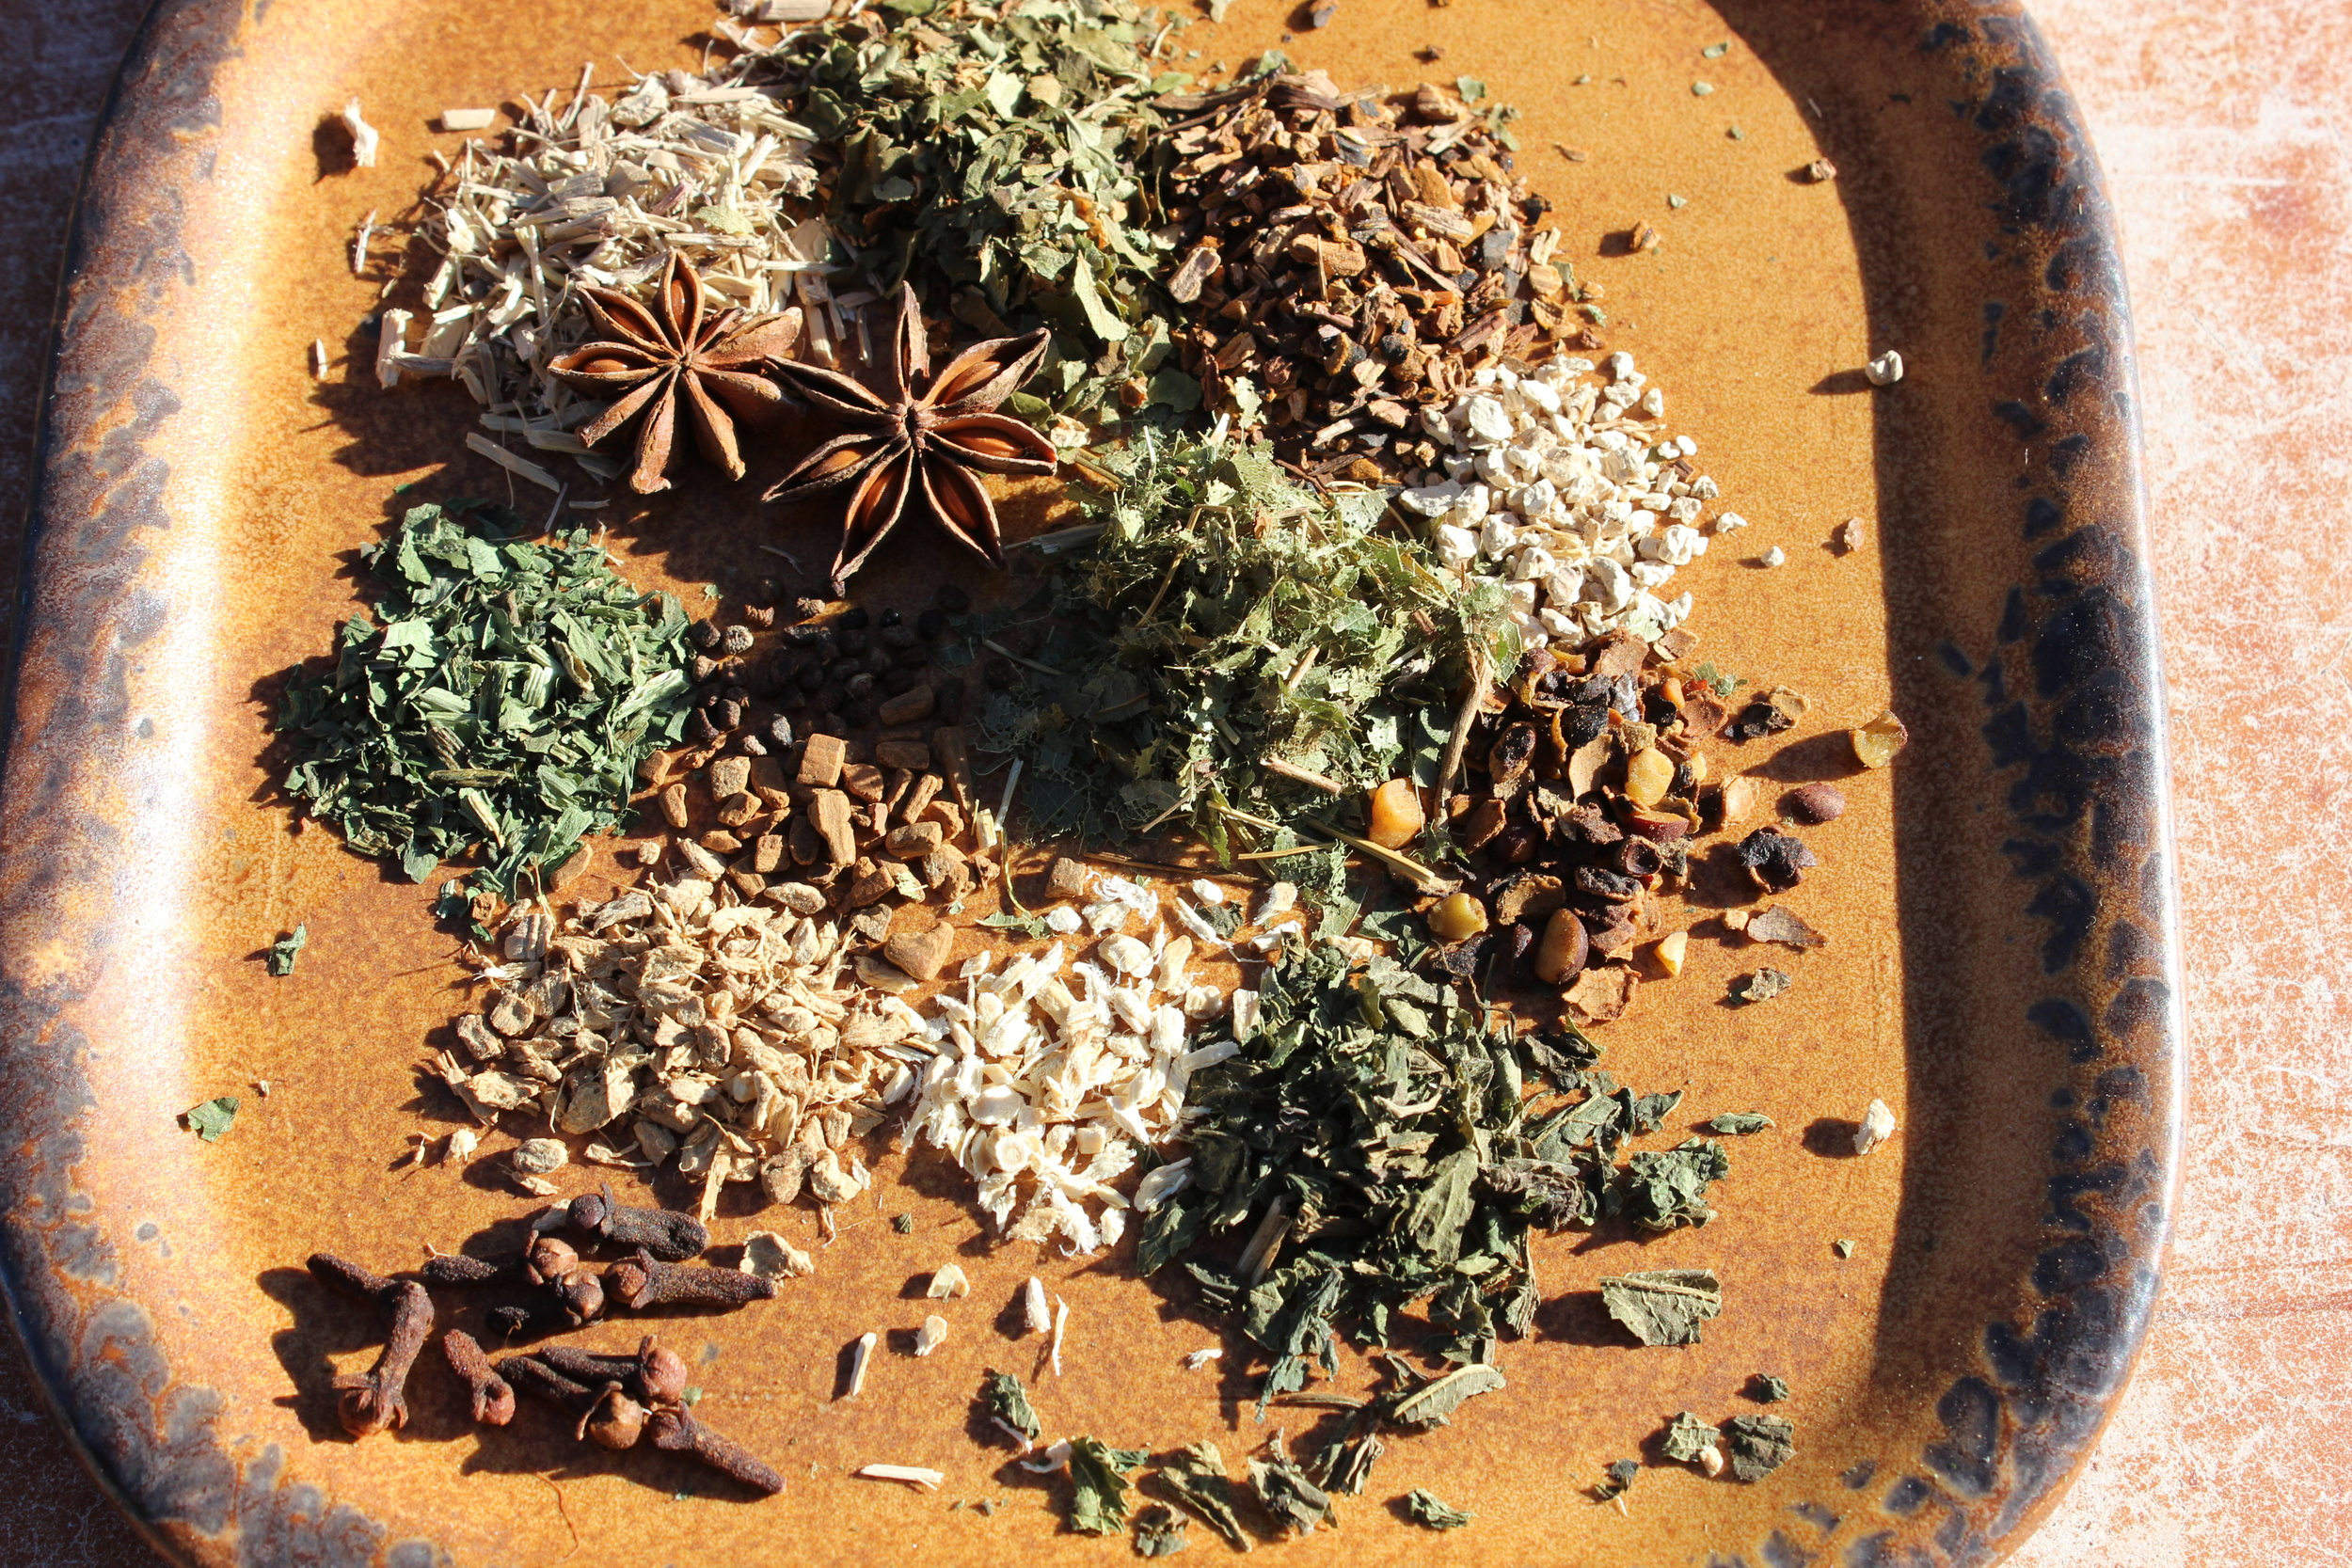 Here are the herbs used in Manly Man Tea. You can buy them at  Starwest Botanicals .